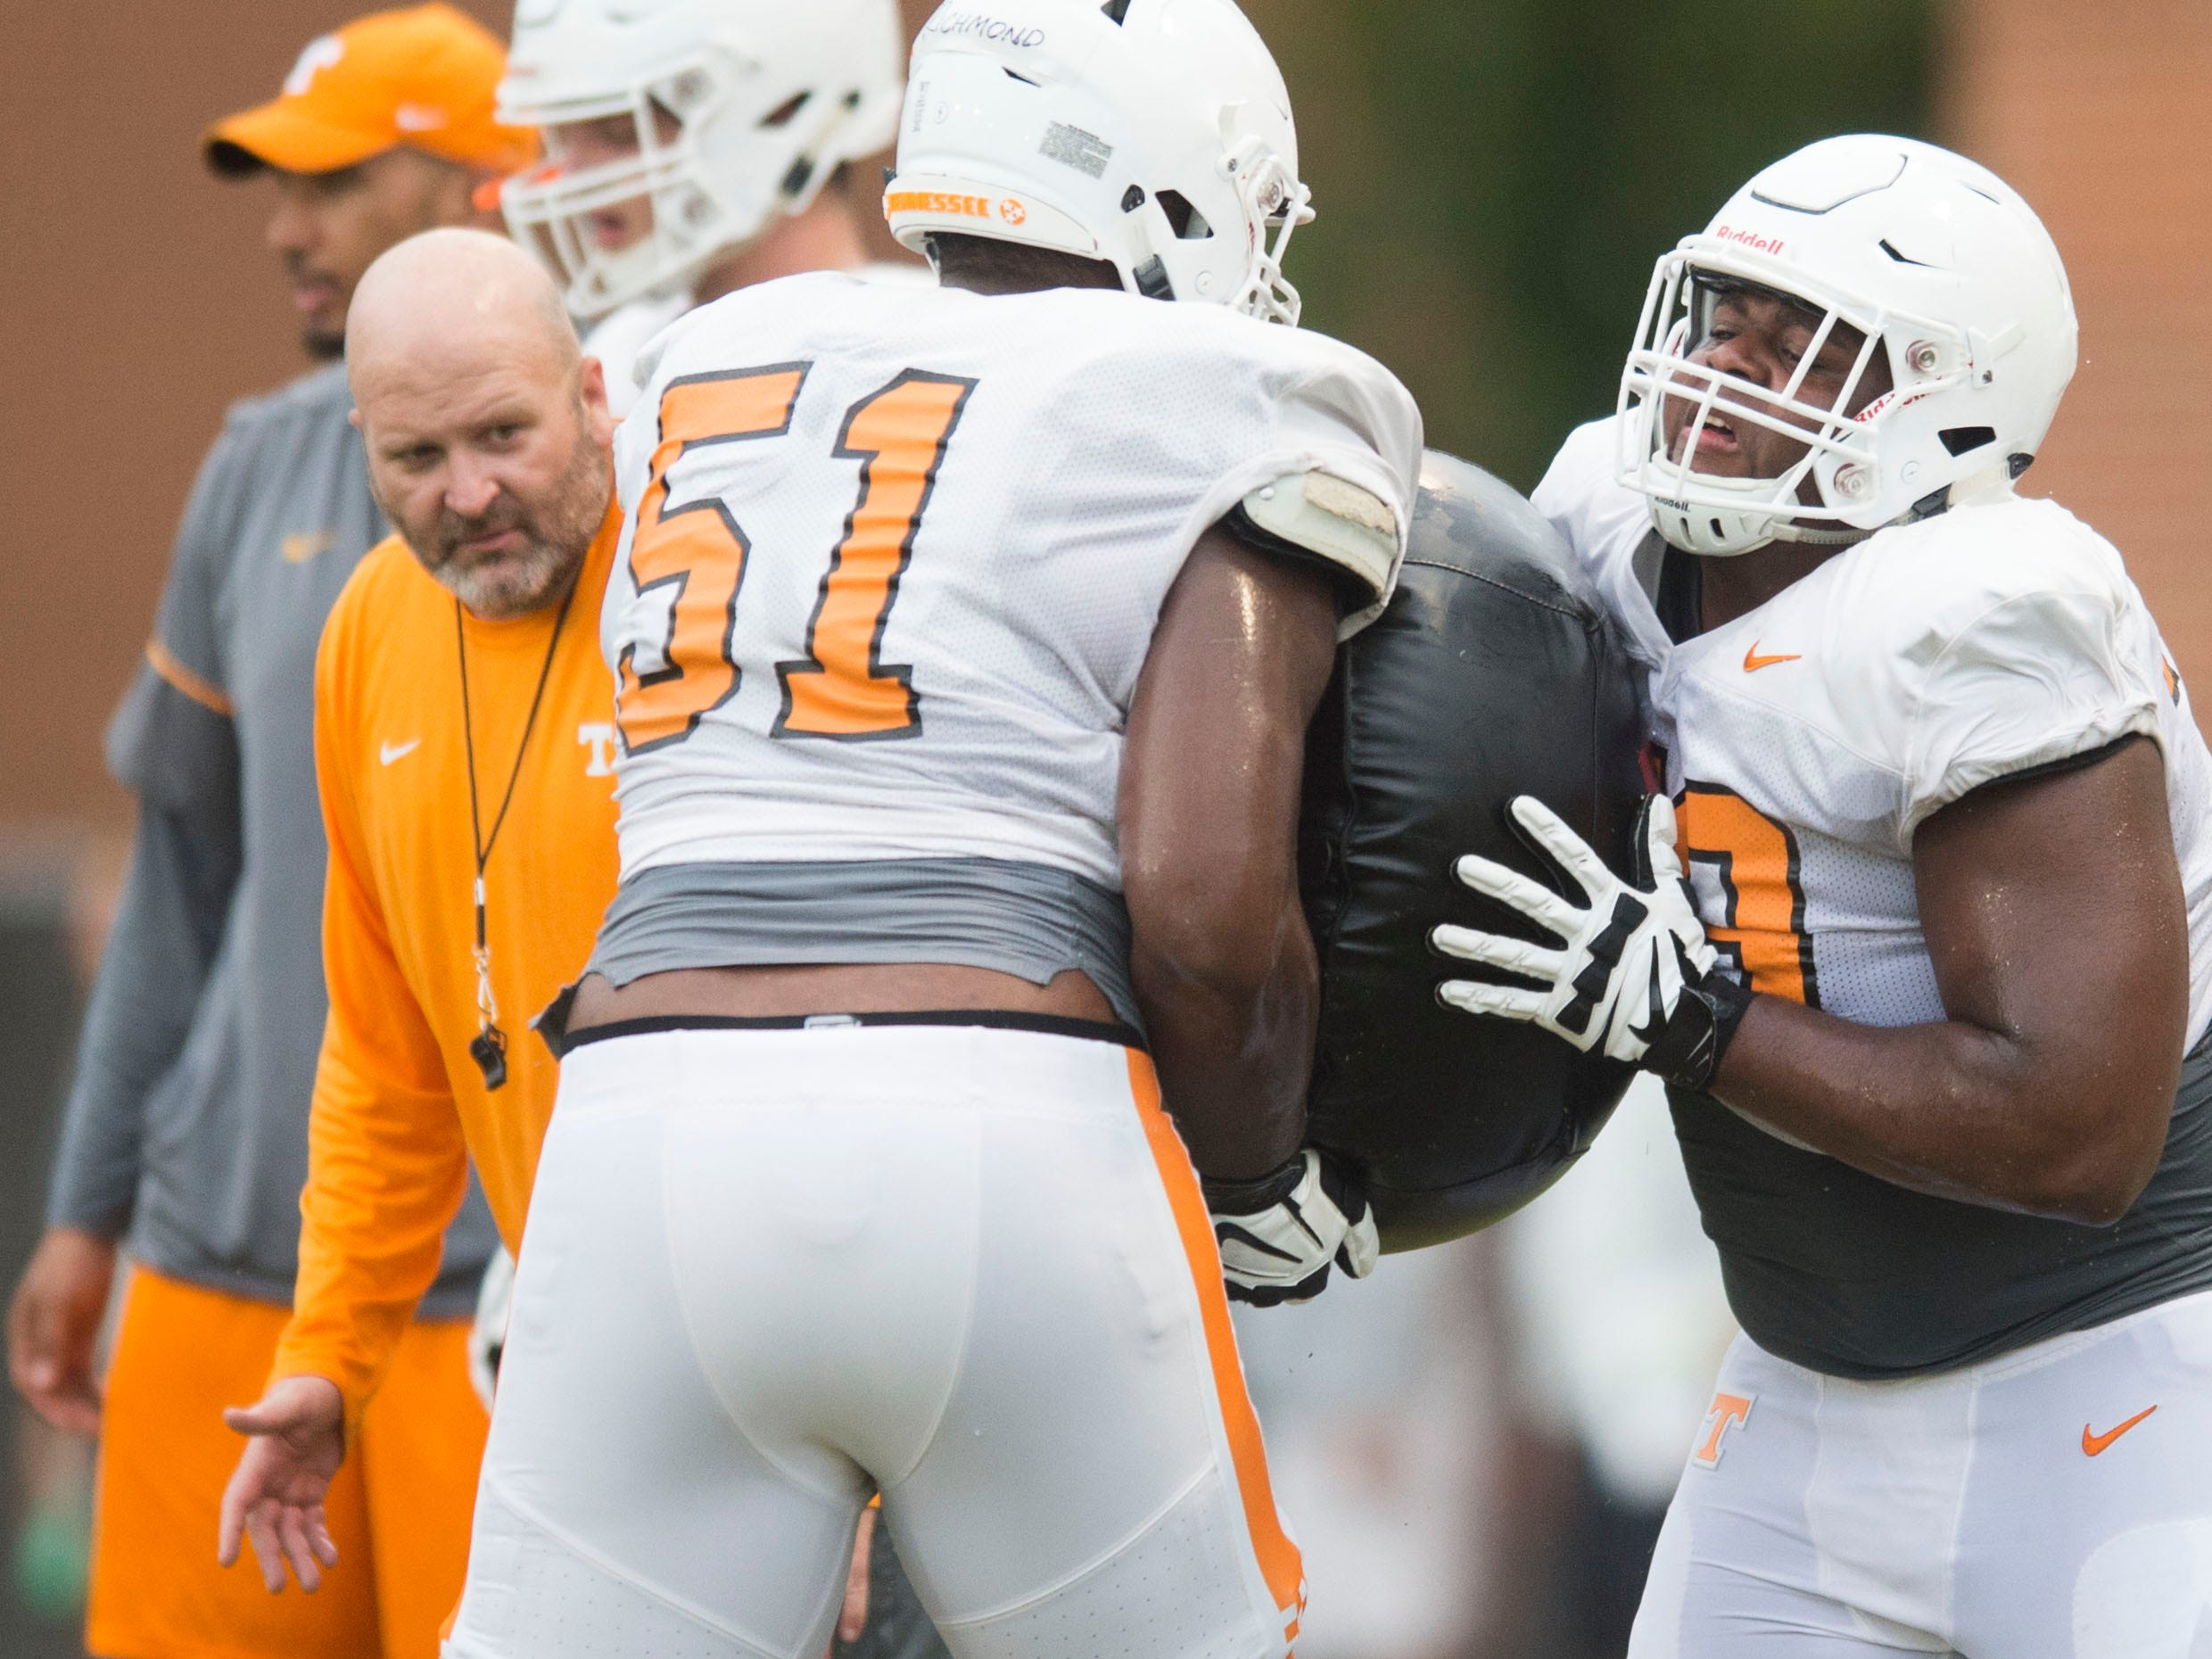 Tennessee offensive line coach Will Friend watch offensive linemen Drew Richmond, left, and Jarious Abercrombie drill during football practice at Haslam Field on Thursday, August 9, 2018.